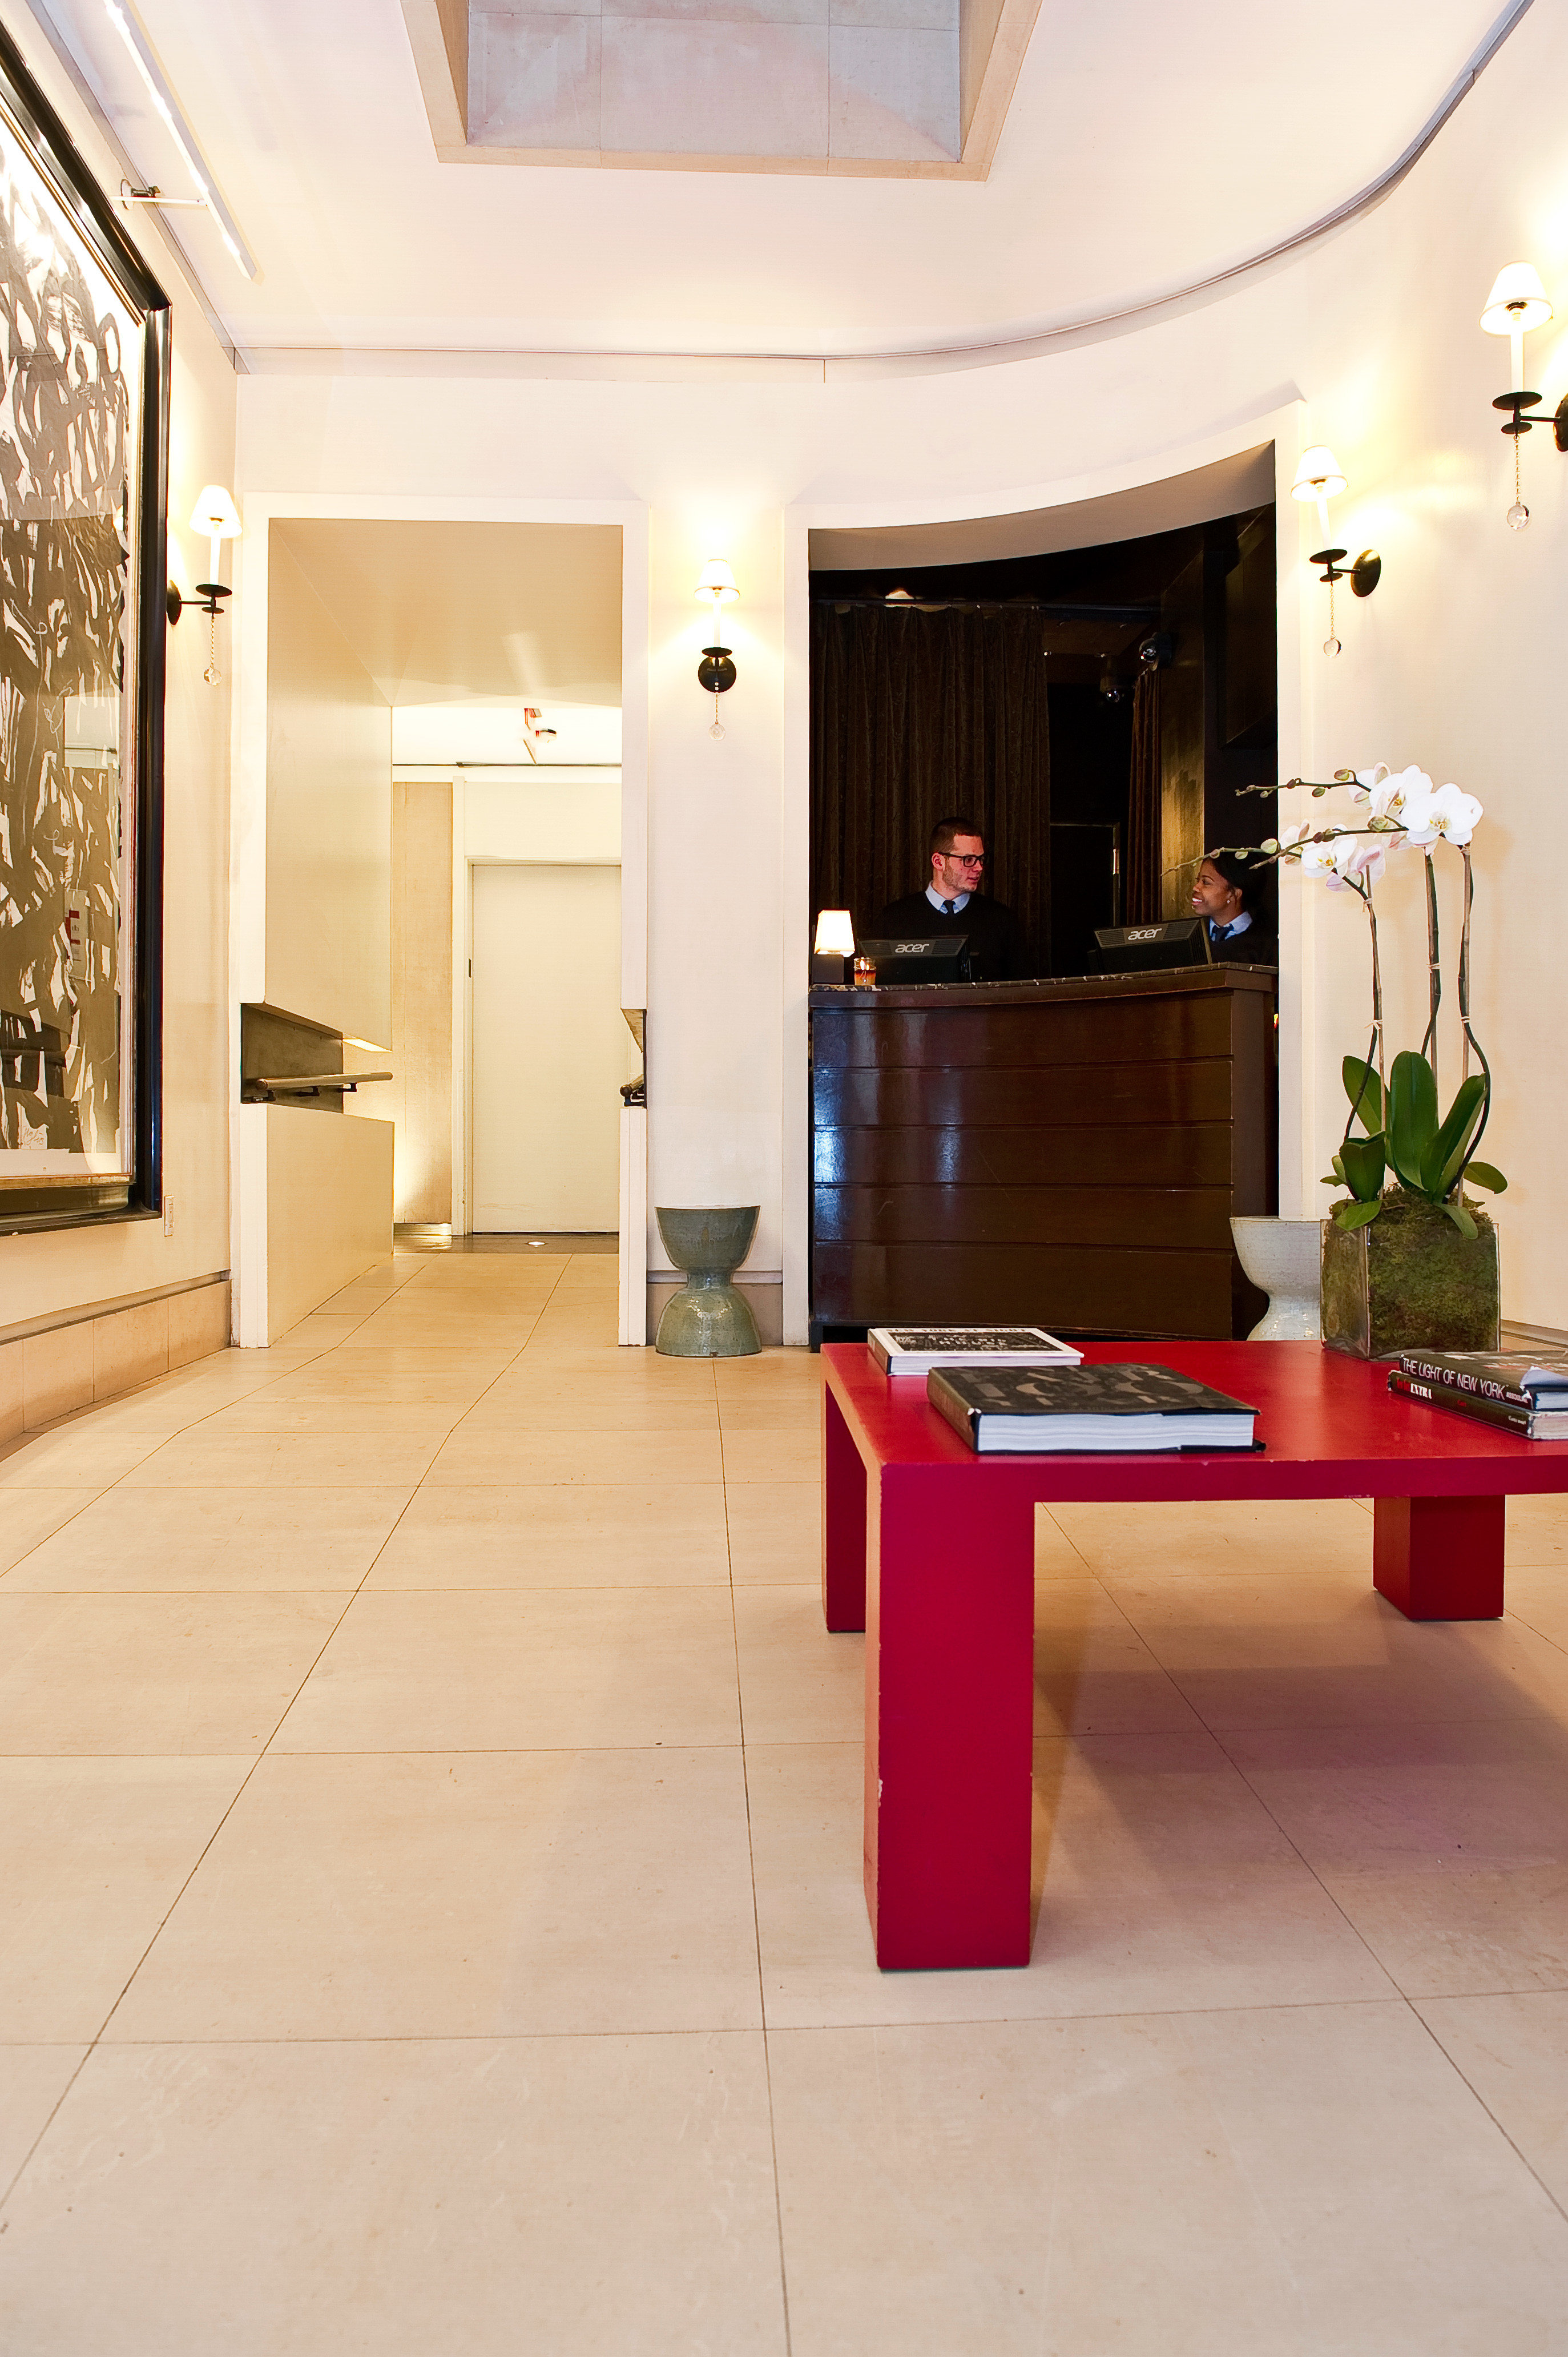 Boutique City Lobby building property flooring home living room Suite hall